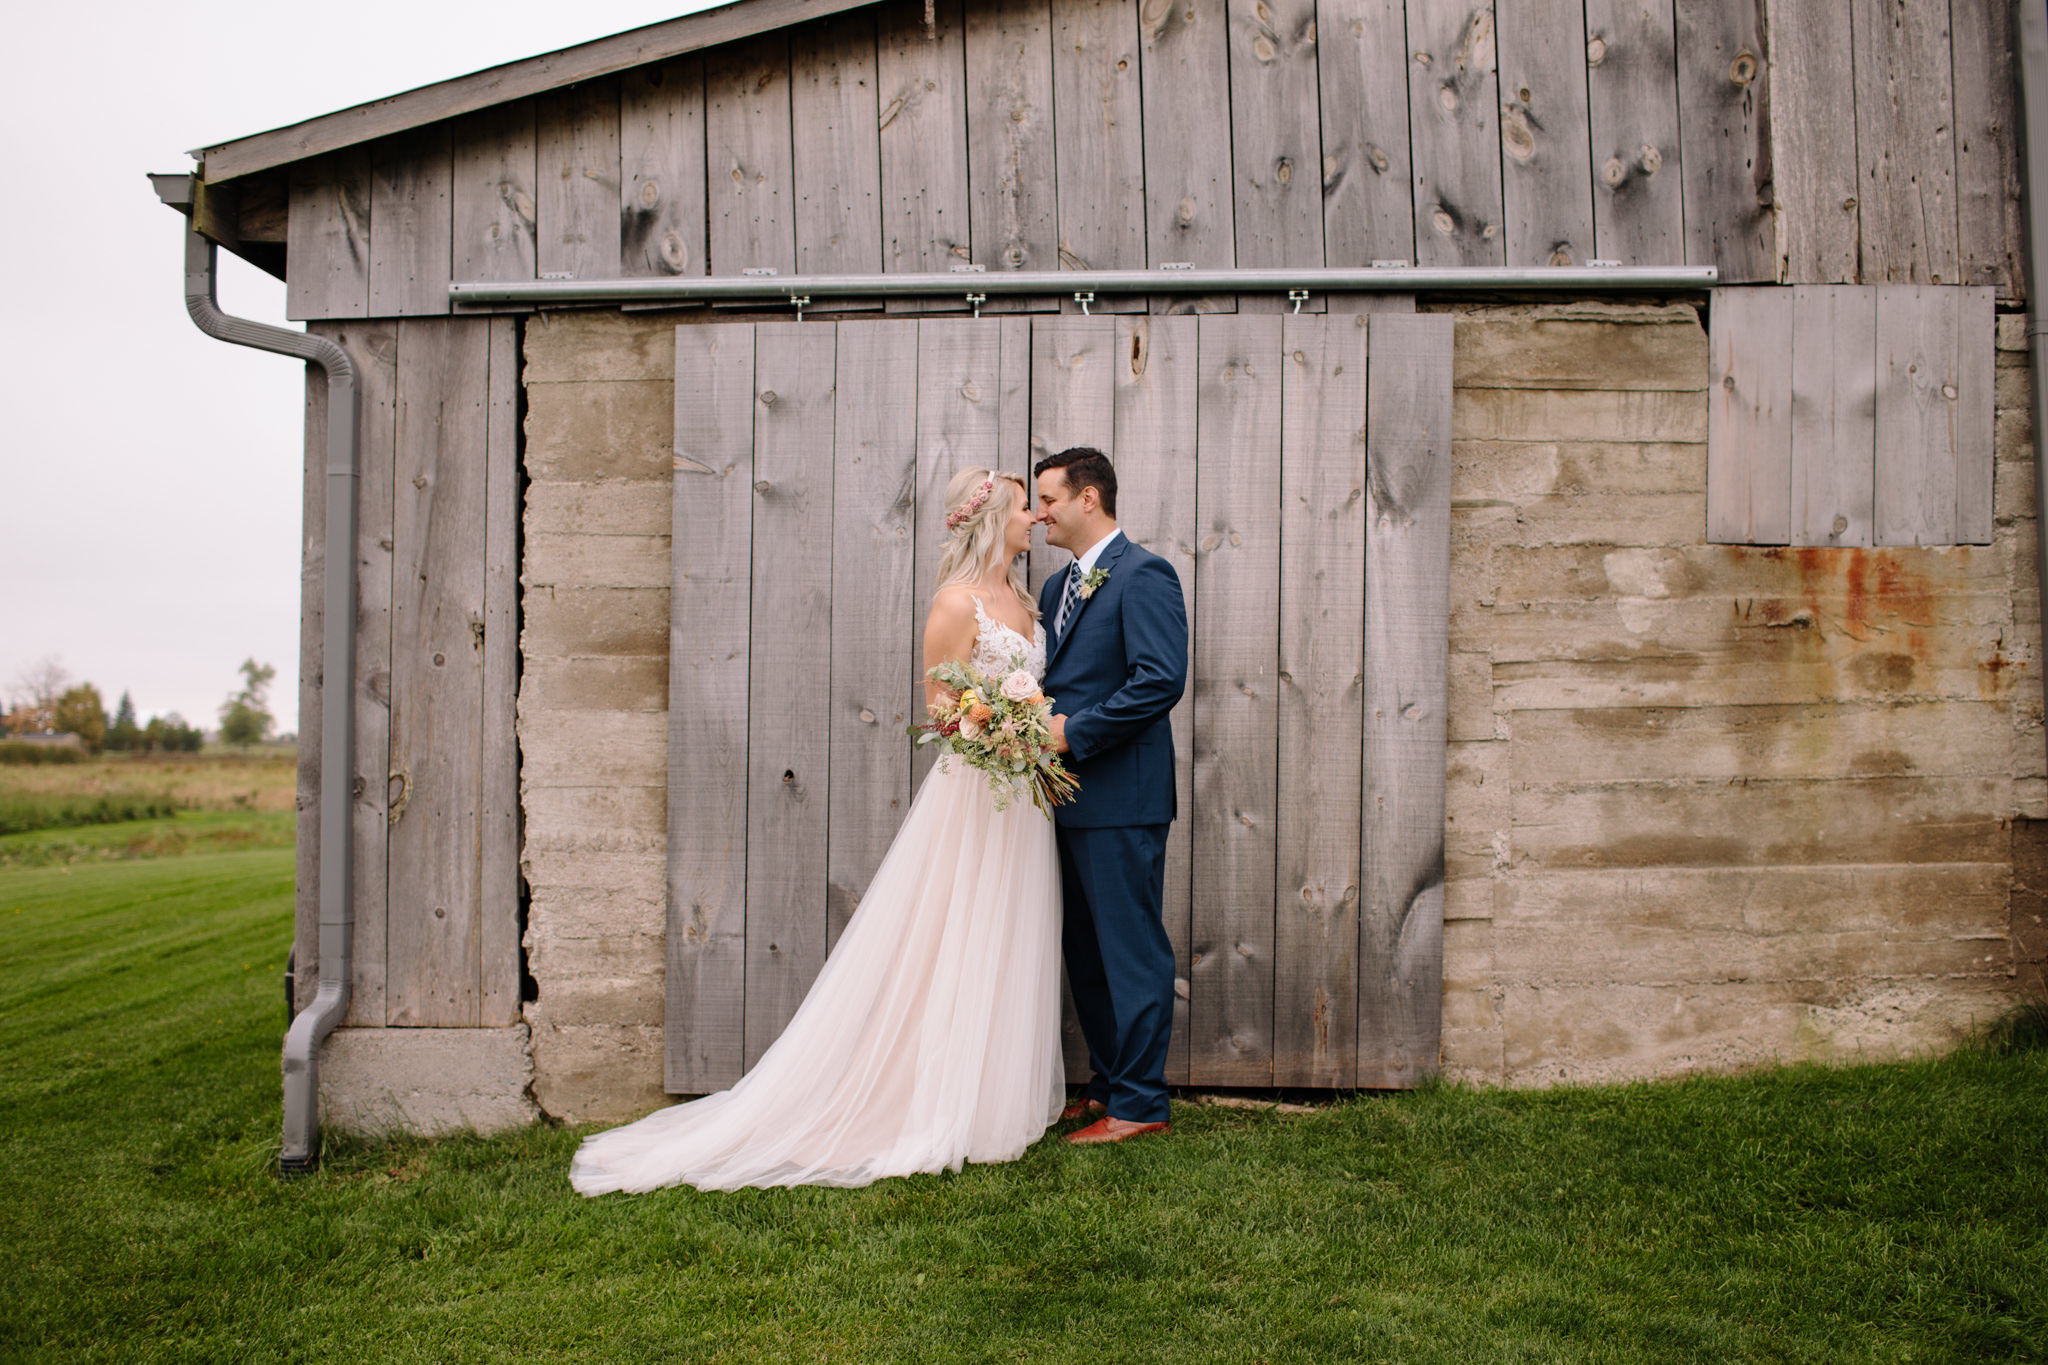 bride and groom smiling while standing infront of a rustic barn door